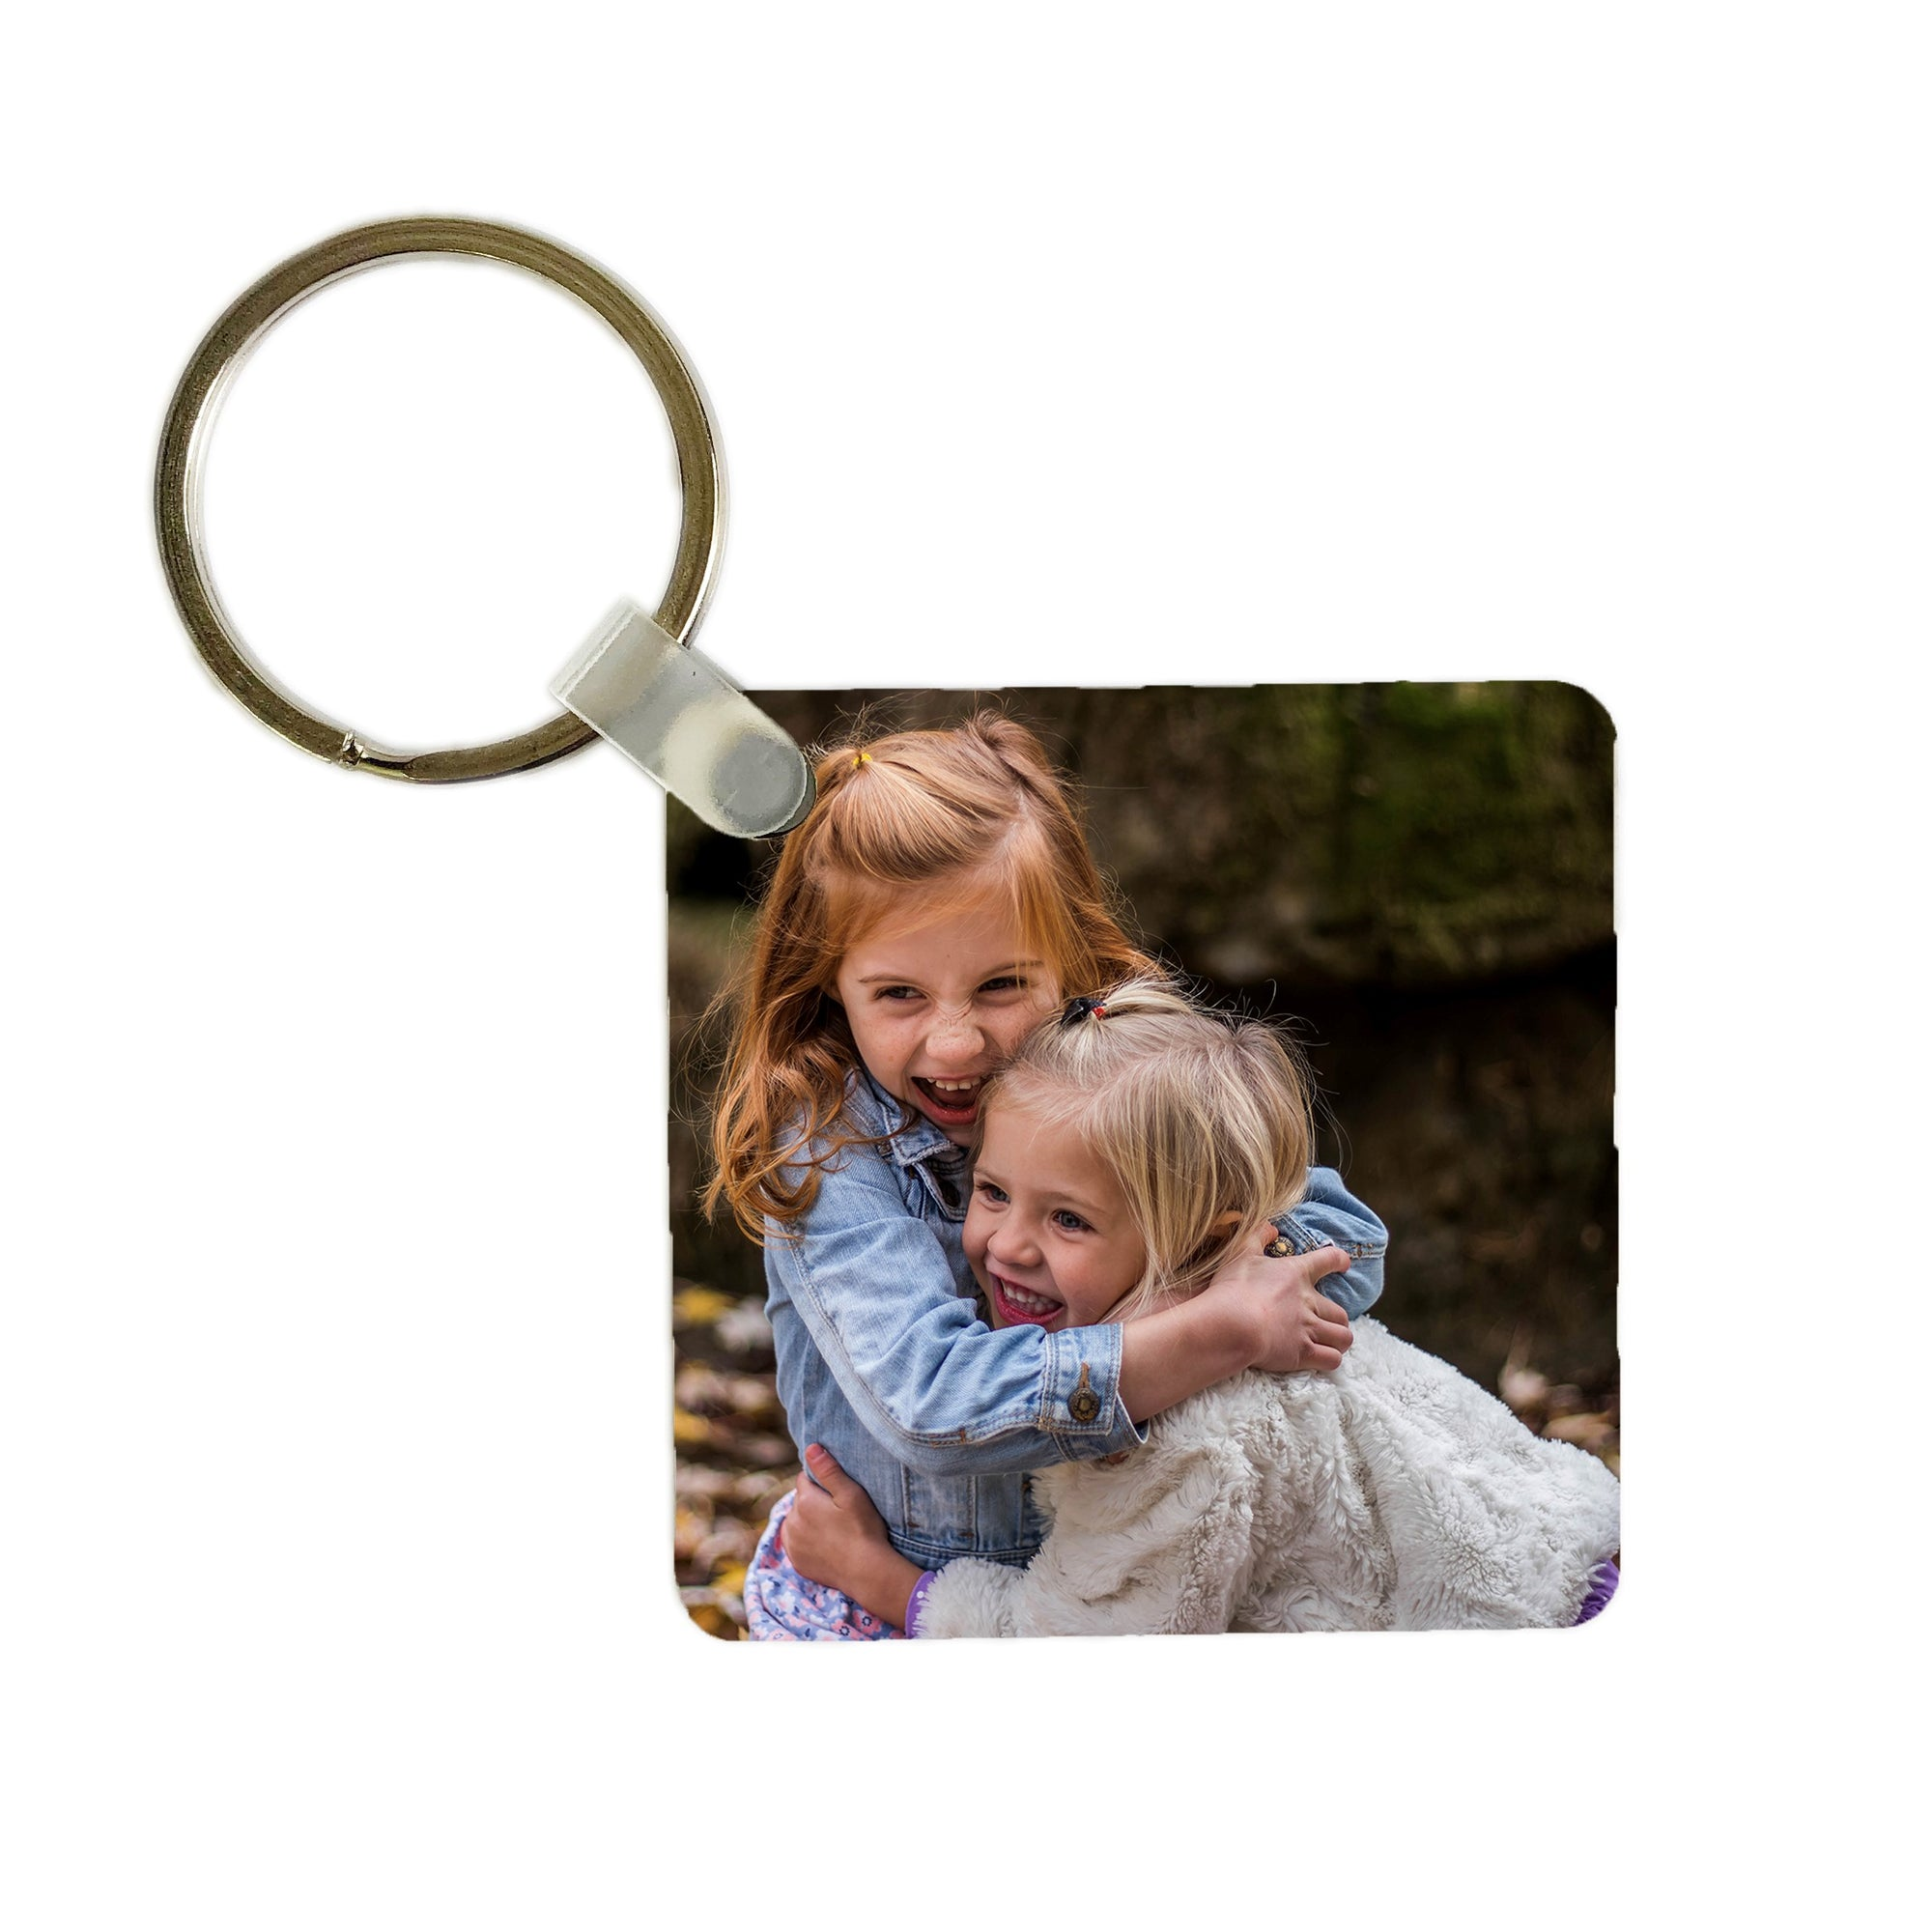 Square custom photo keychain